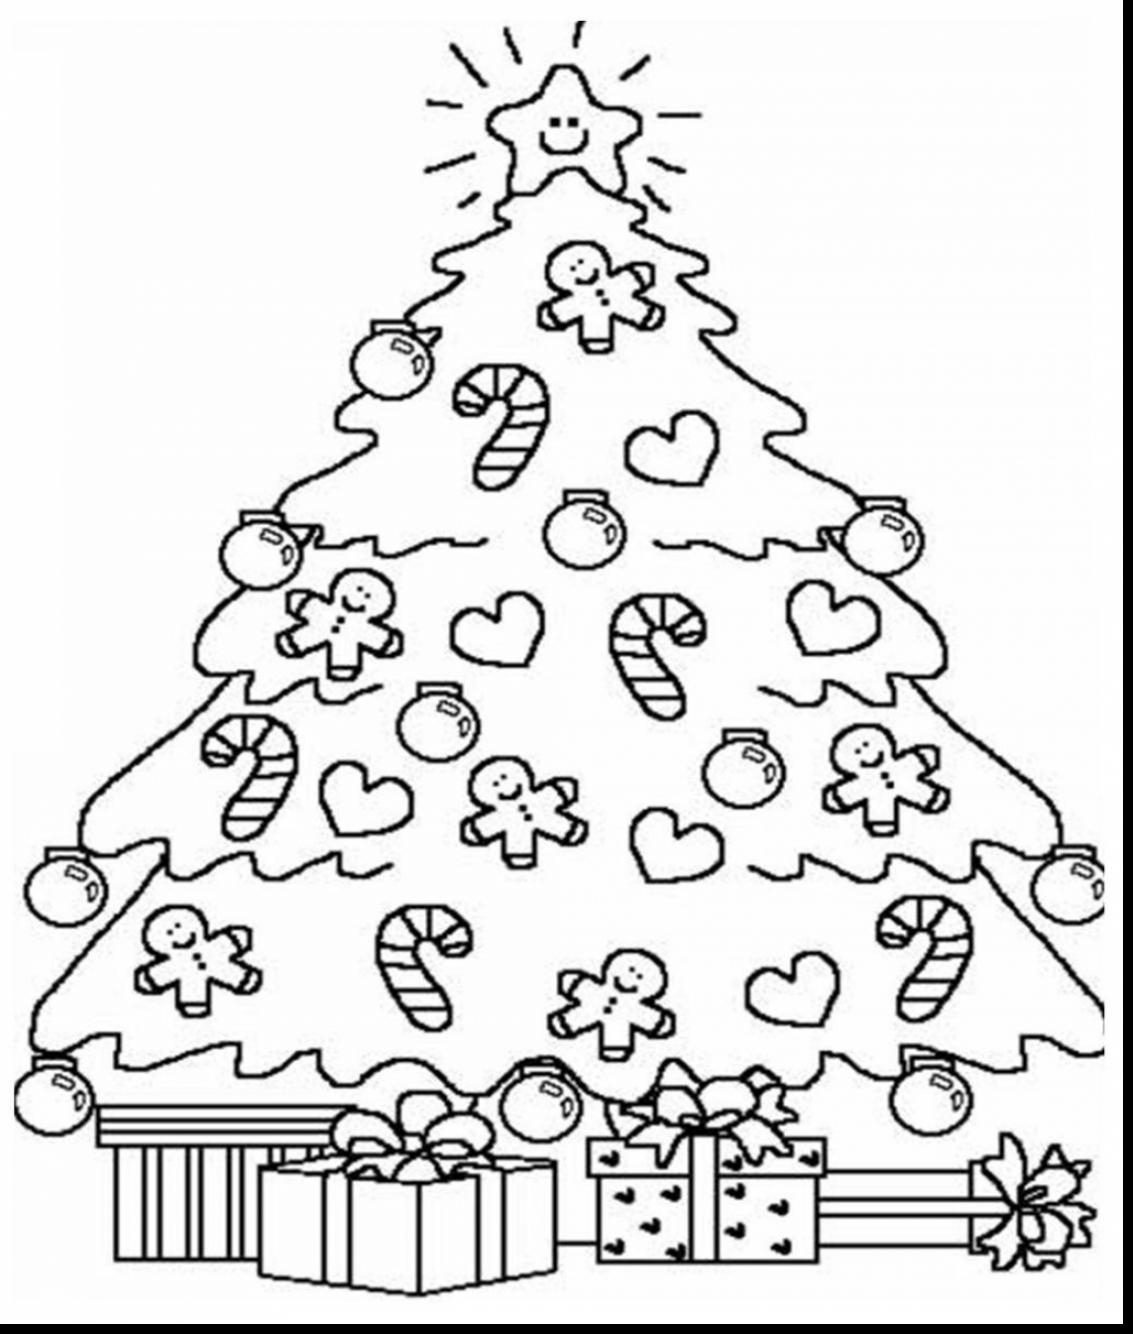 christmas tree coloring pages printable coloring pages fascinating to print of nice palm tree coloring page